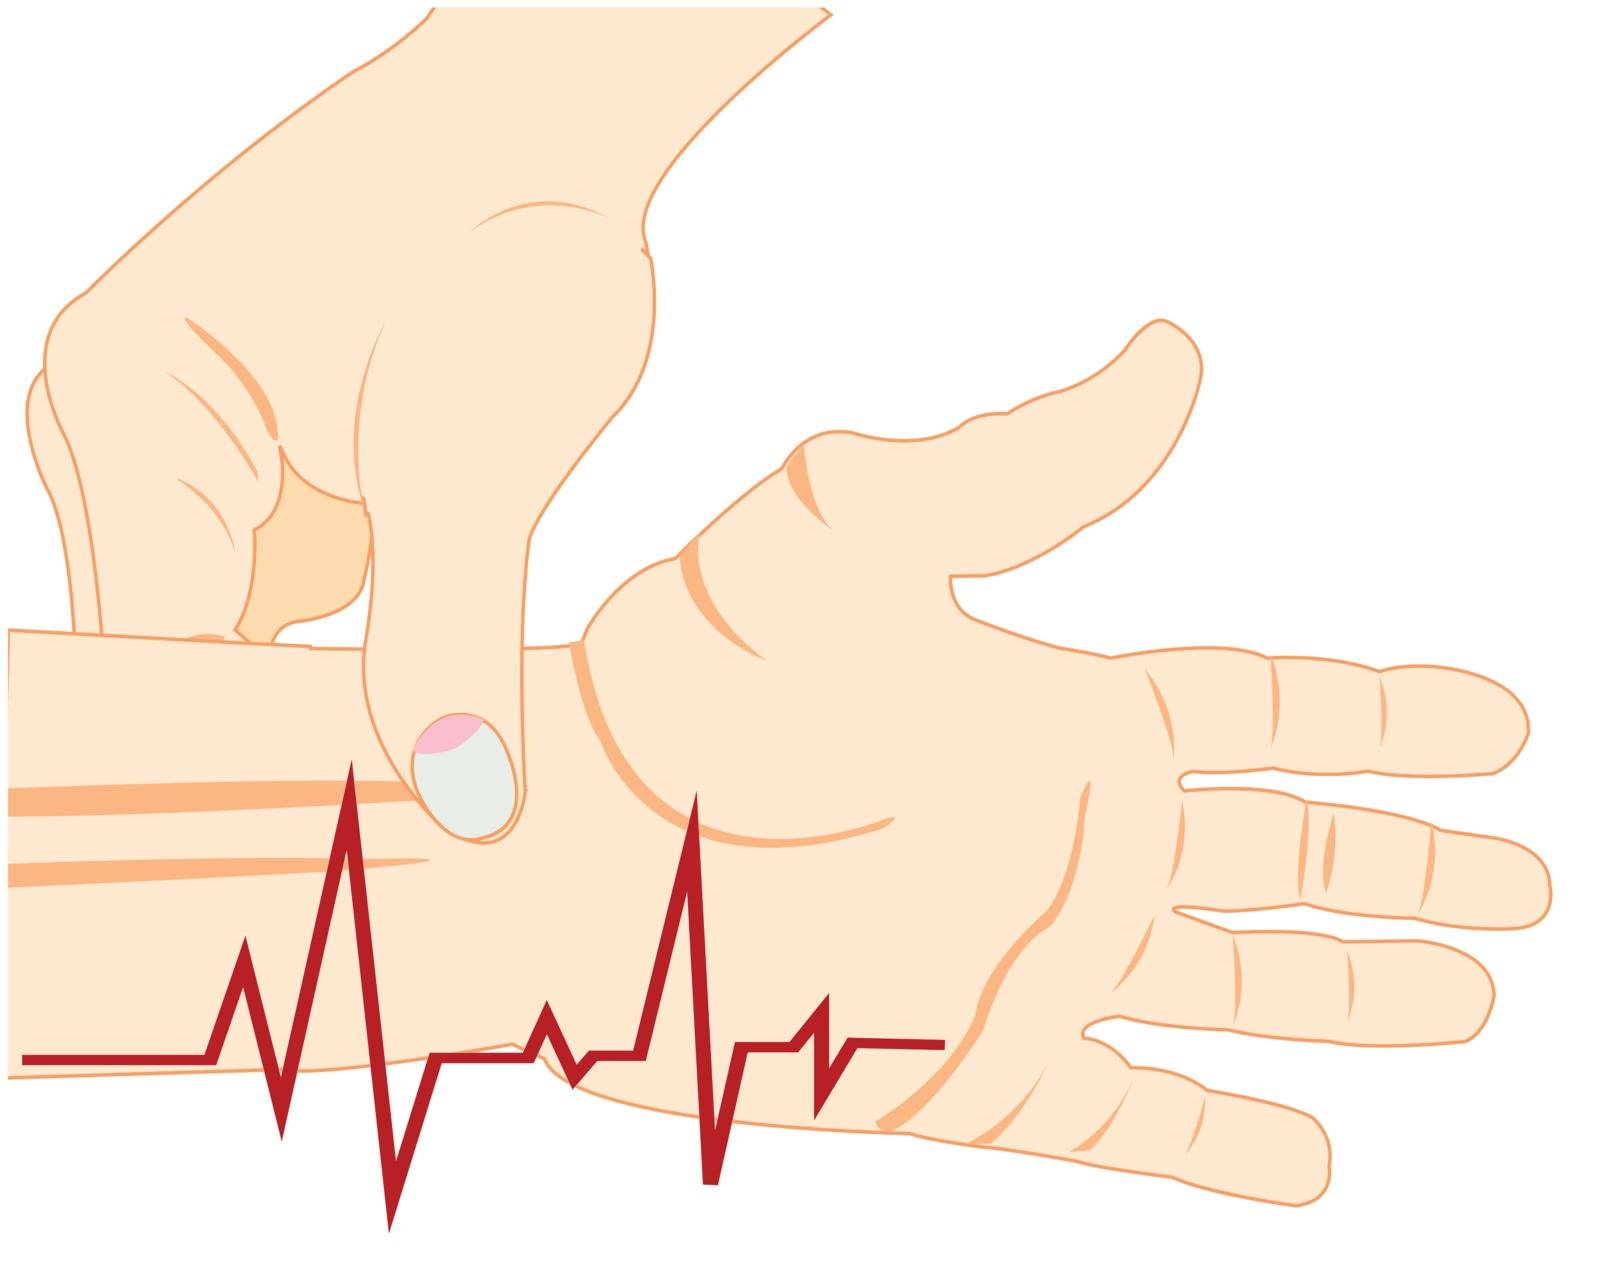 Measurement of the pulse on hand of the person